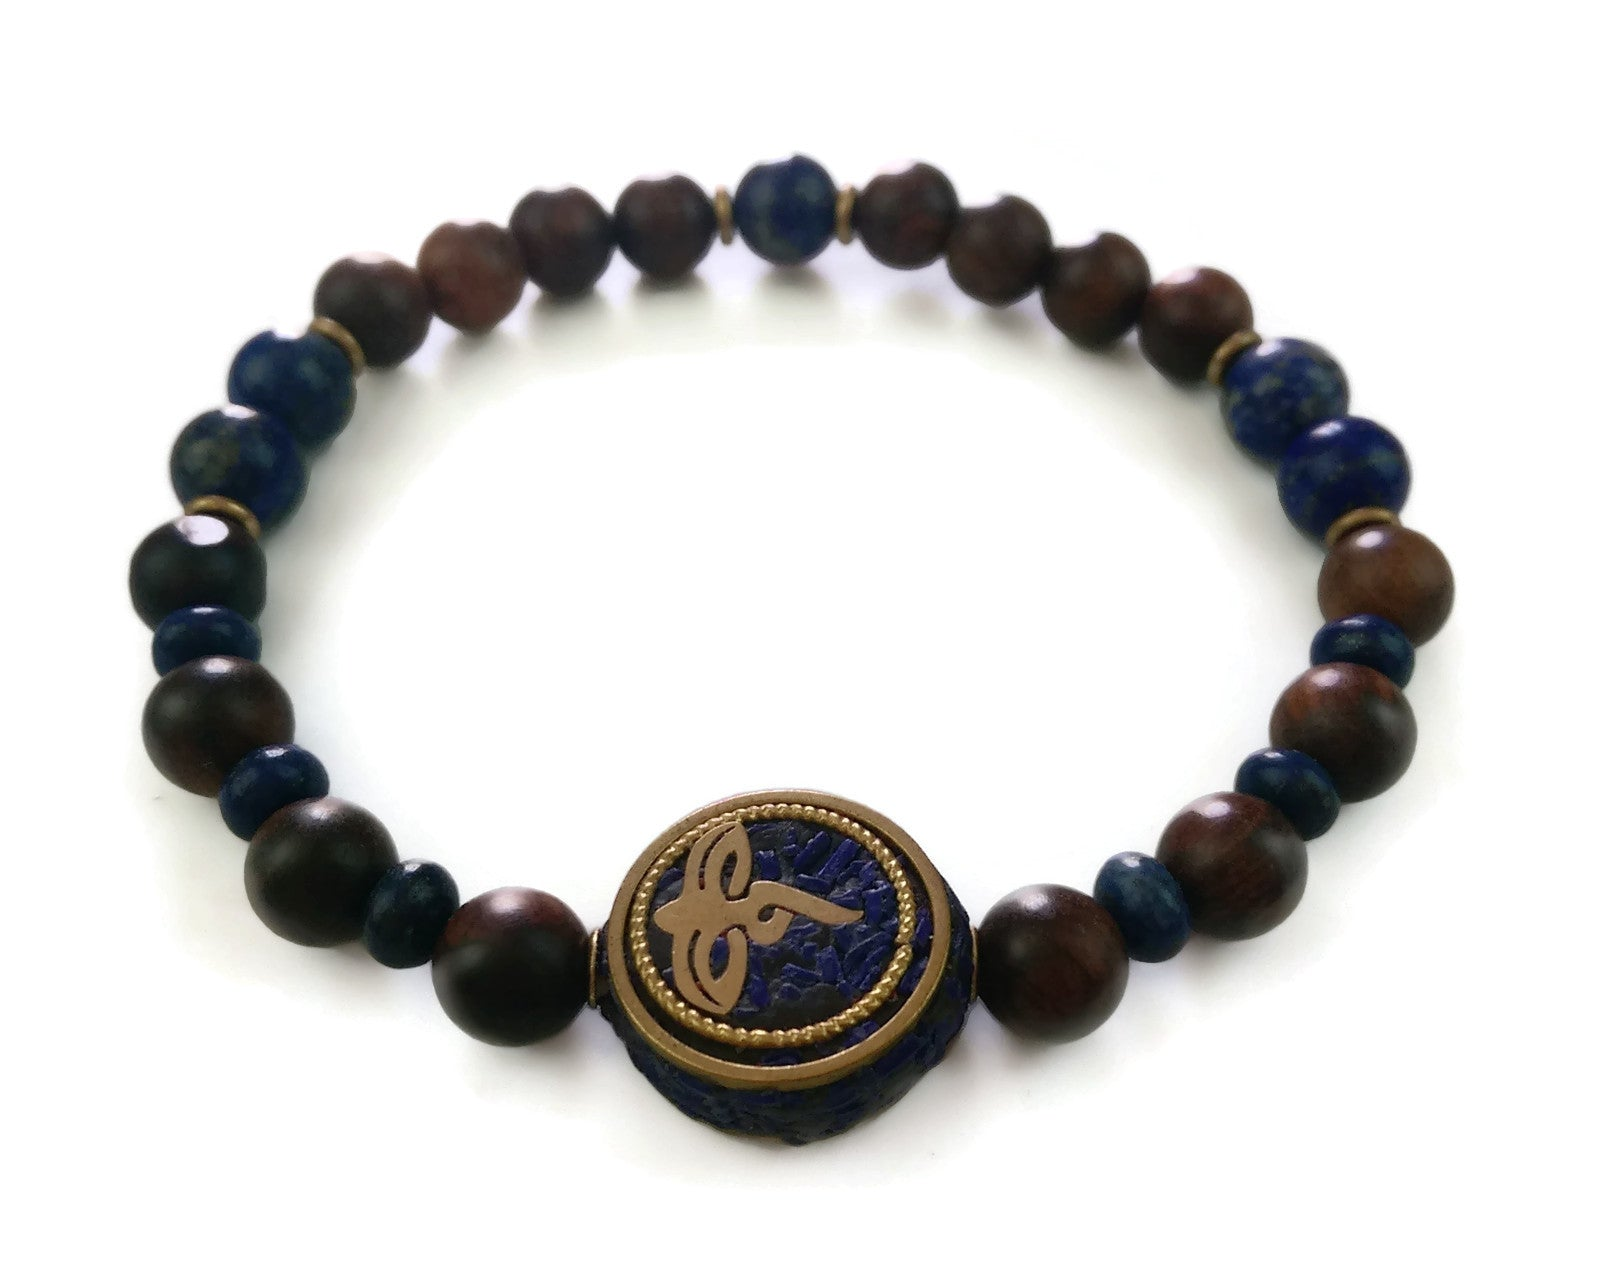 Nepal Chakra Collection 8mm Brown Agarwood Lapis Nepal Bead Wrist Mala Stretch Bracelet Third Eye Chakra